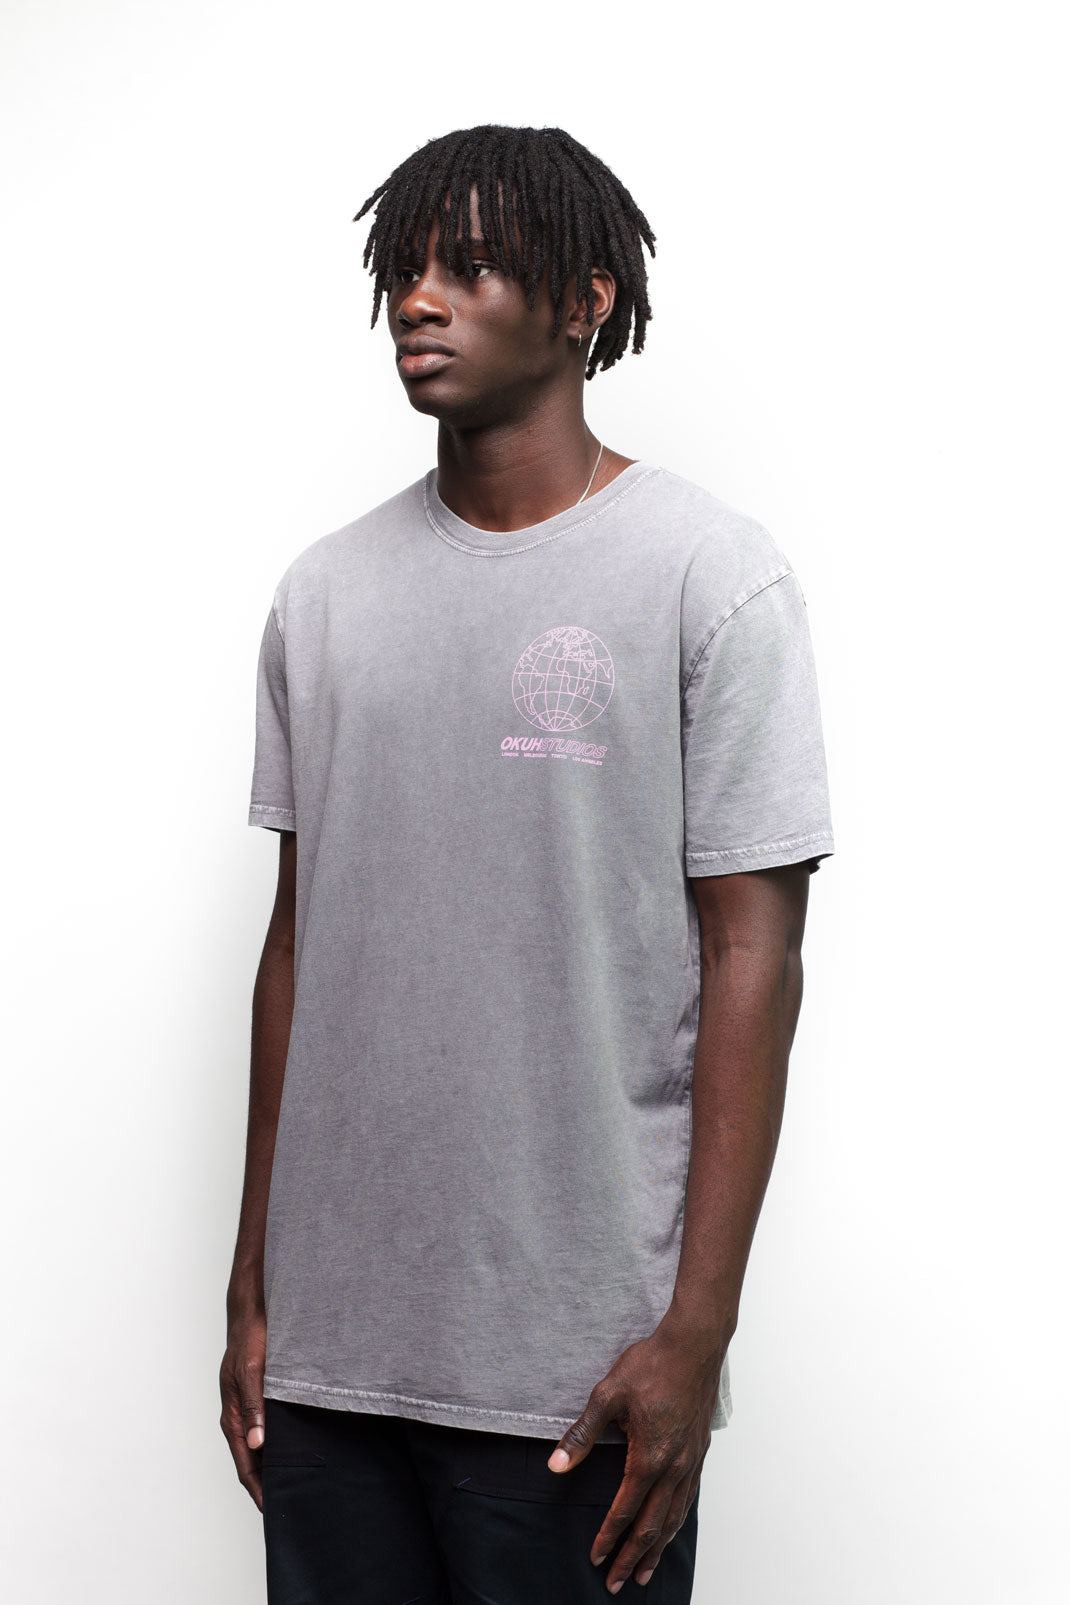 Grey Acid Wash Globe T-Shirt - okuhstudios